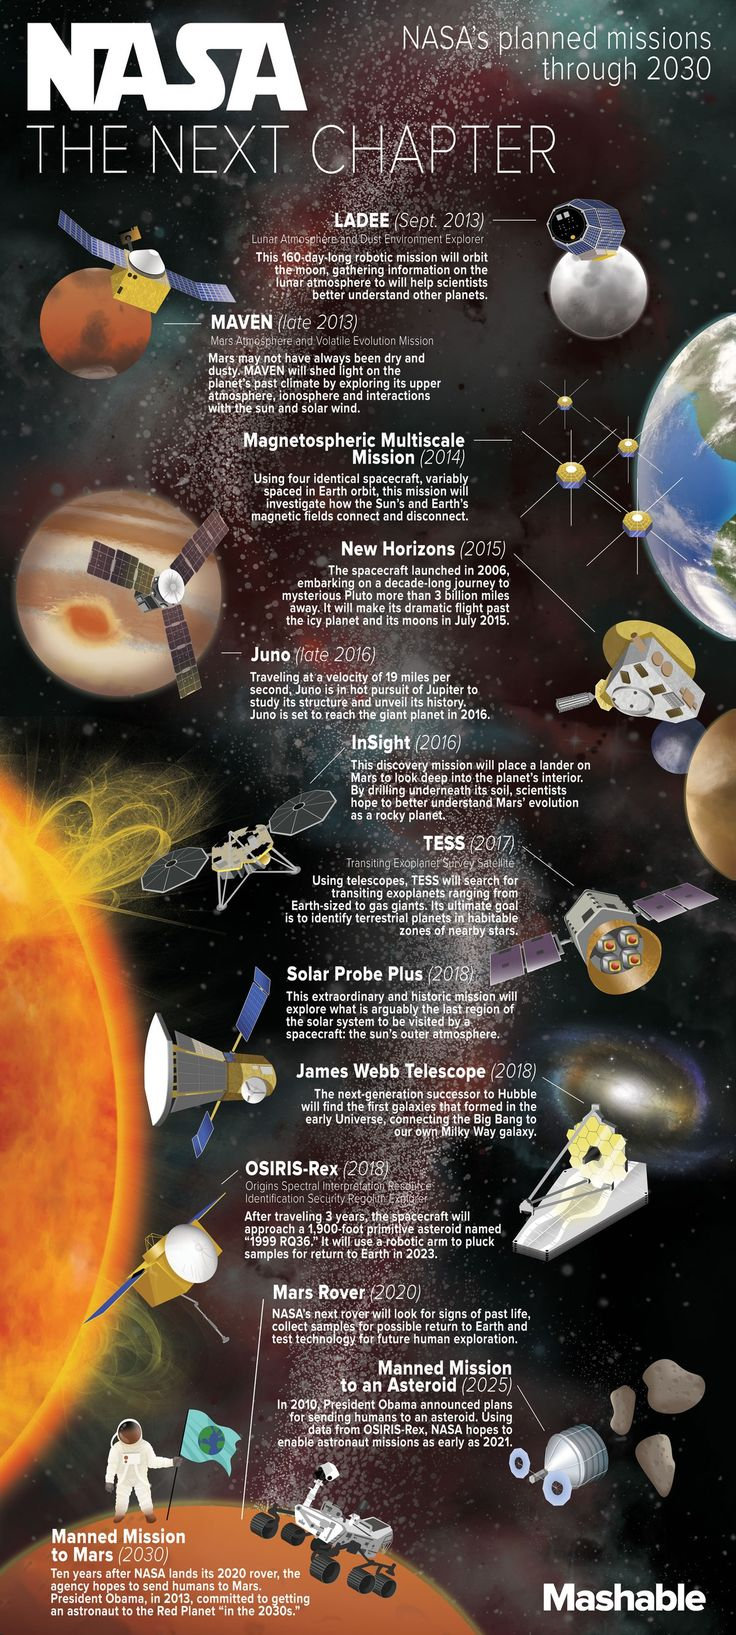 Happy 55th Birthday NASA! What's Next for NASA: Planned Missions Through 2030 - INFOGRAPHIC